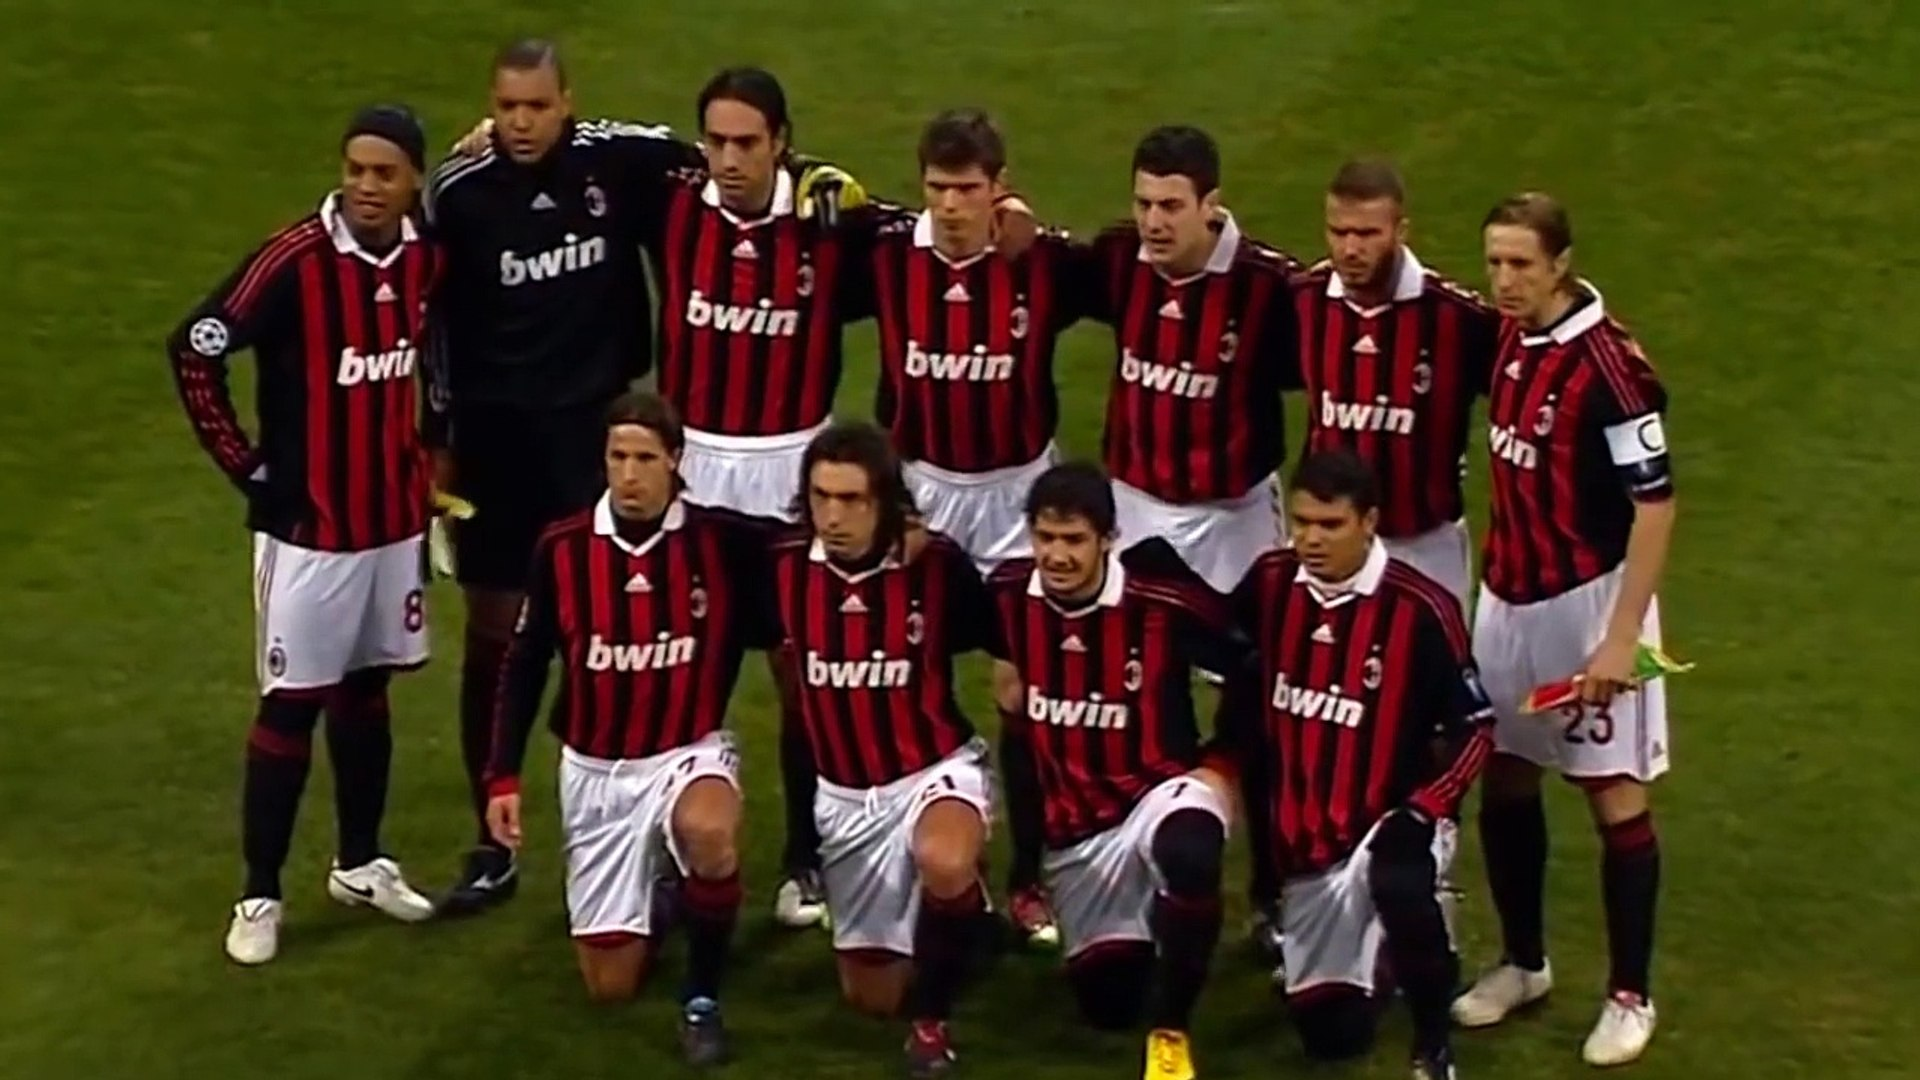 Ac Milan Vs Manchester United 2 3 Highlights Ucl Round Of 16 2009 10 Video Dailymotion